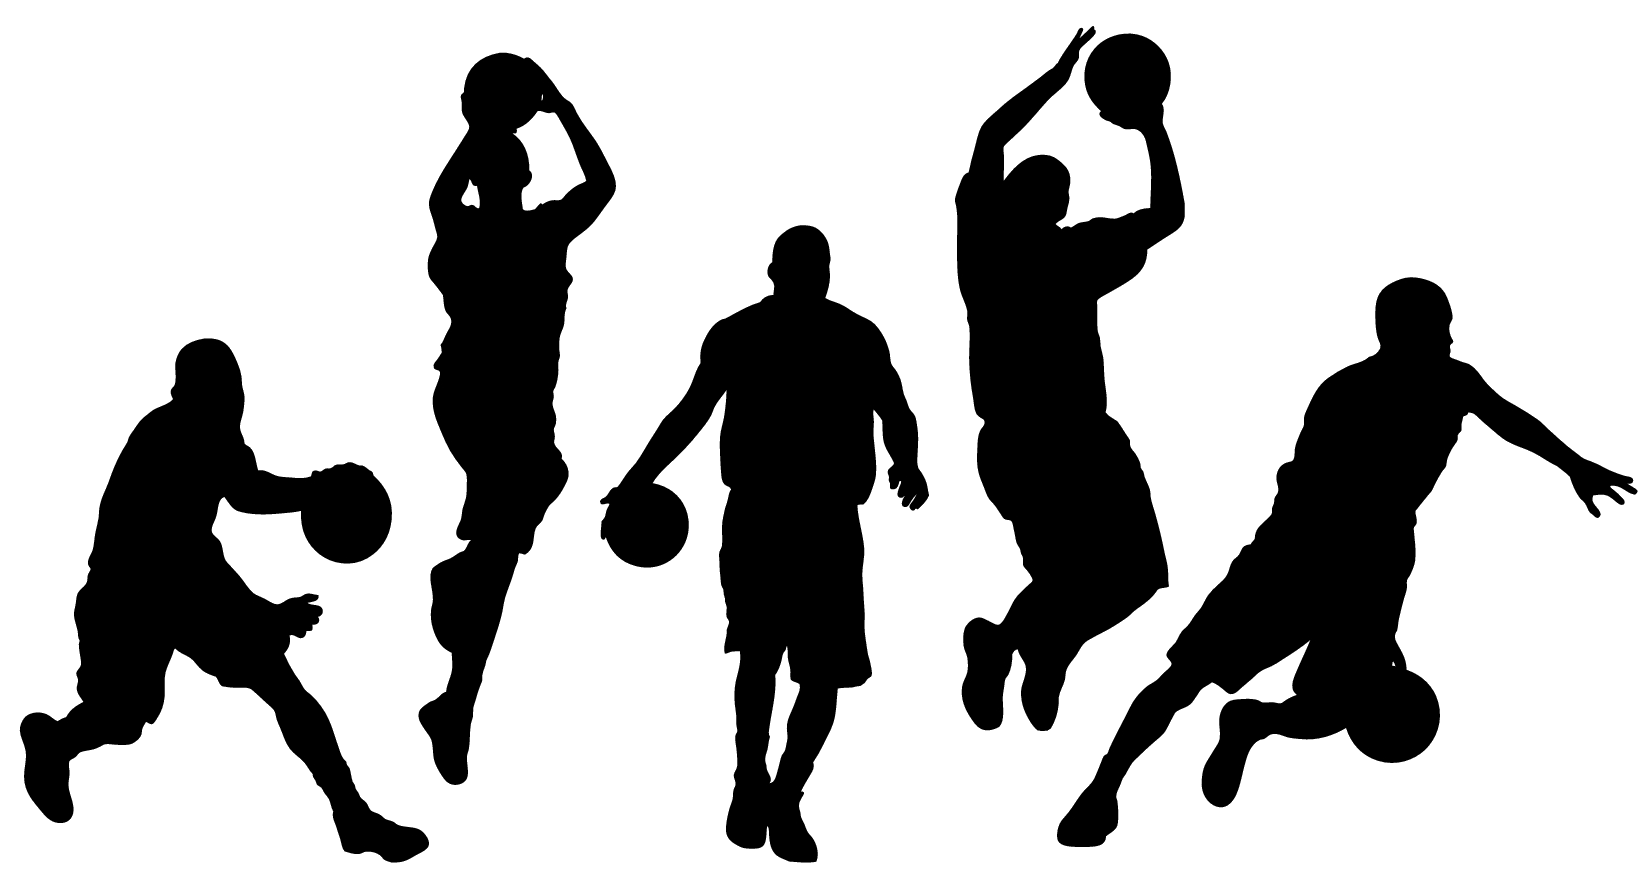 Kid playing on a basketball team clipart picture black and white stock About Us | All-Stars Kid Sports picture black and white stock